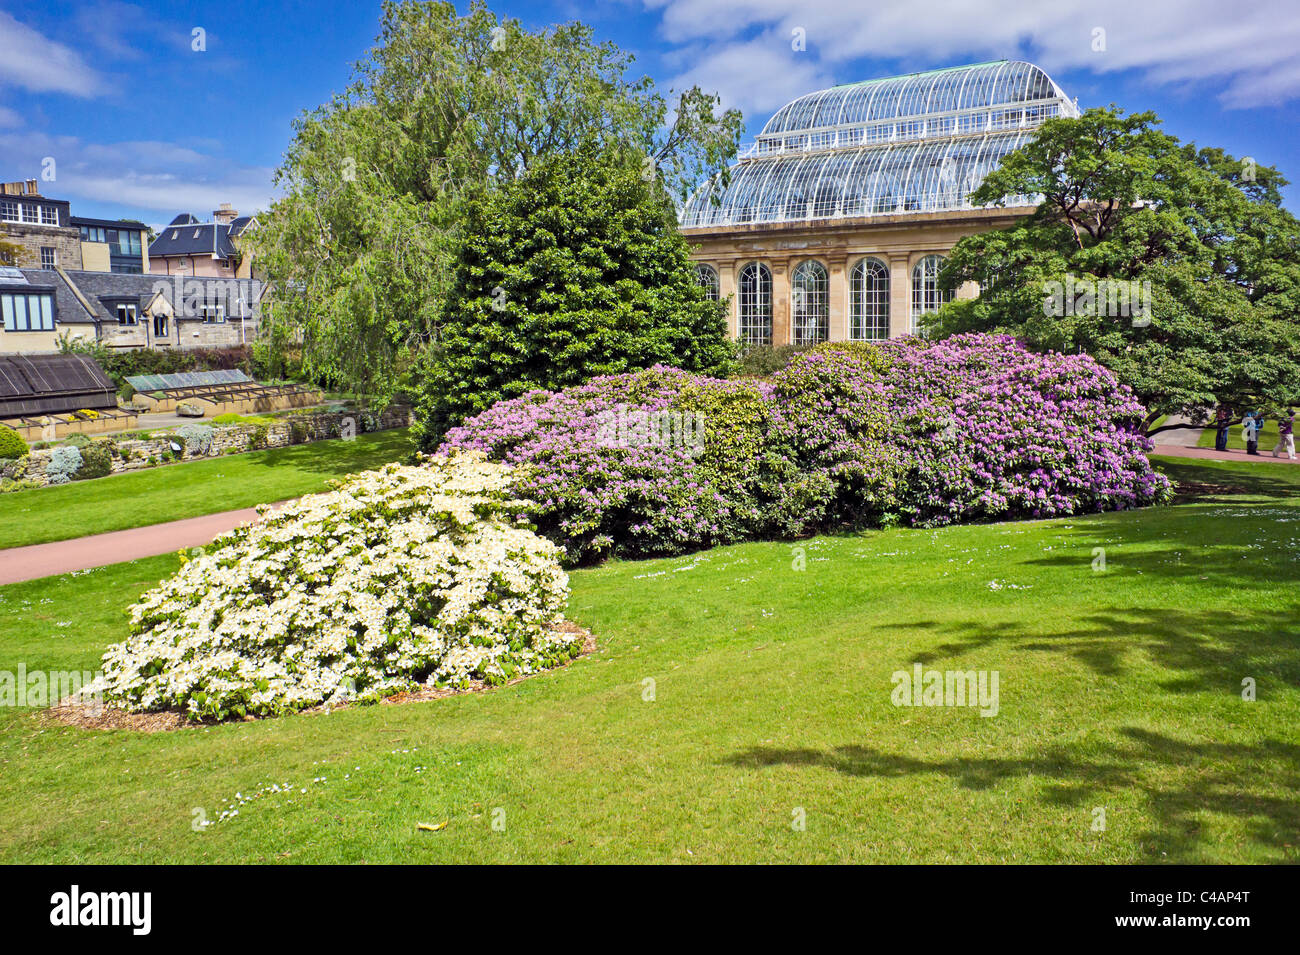 Royal Botanic Garden Edinburgh - Stock Image